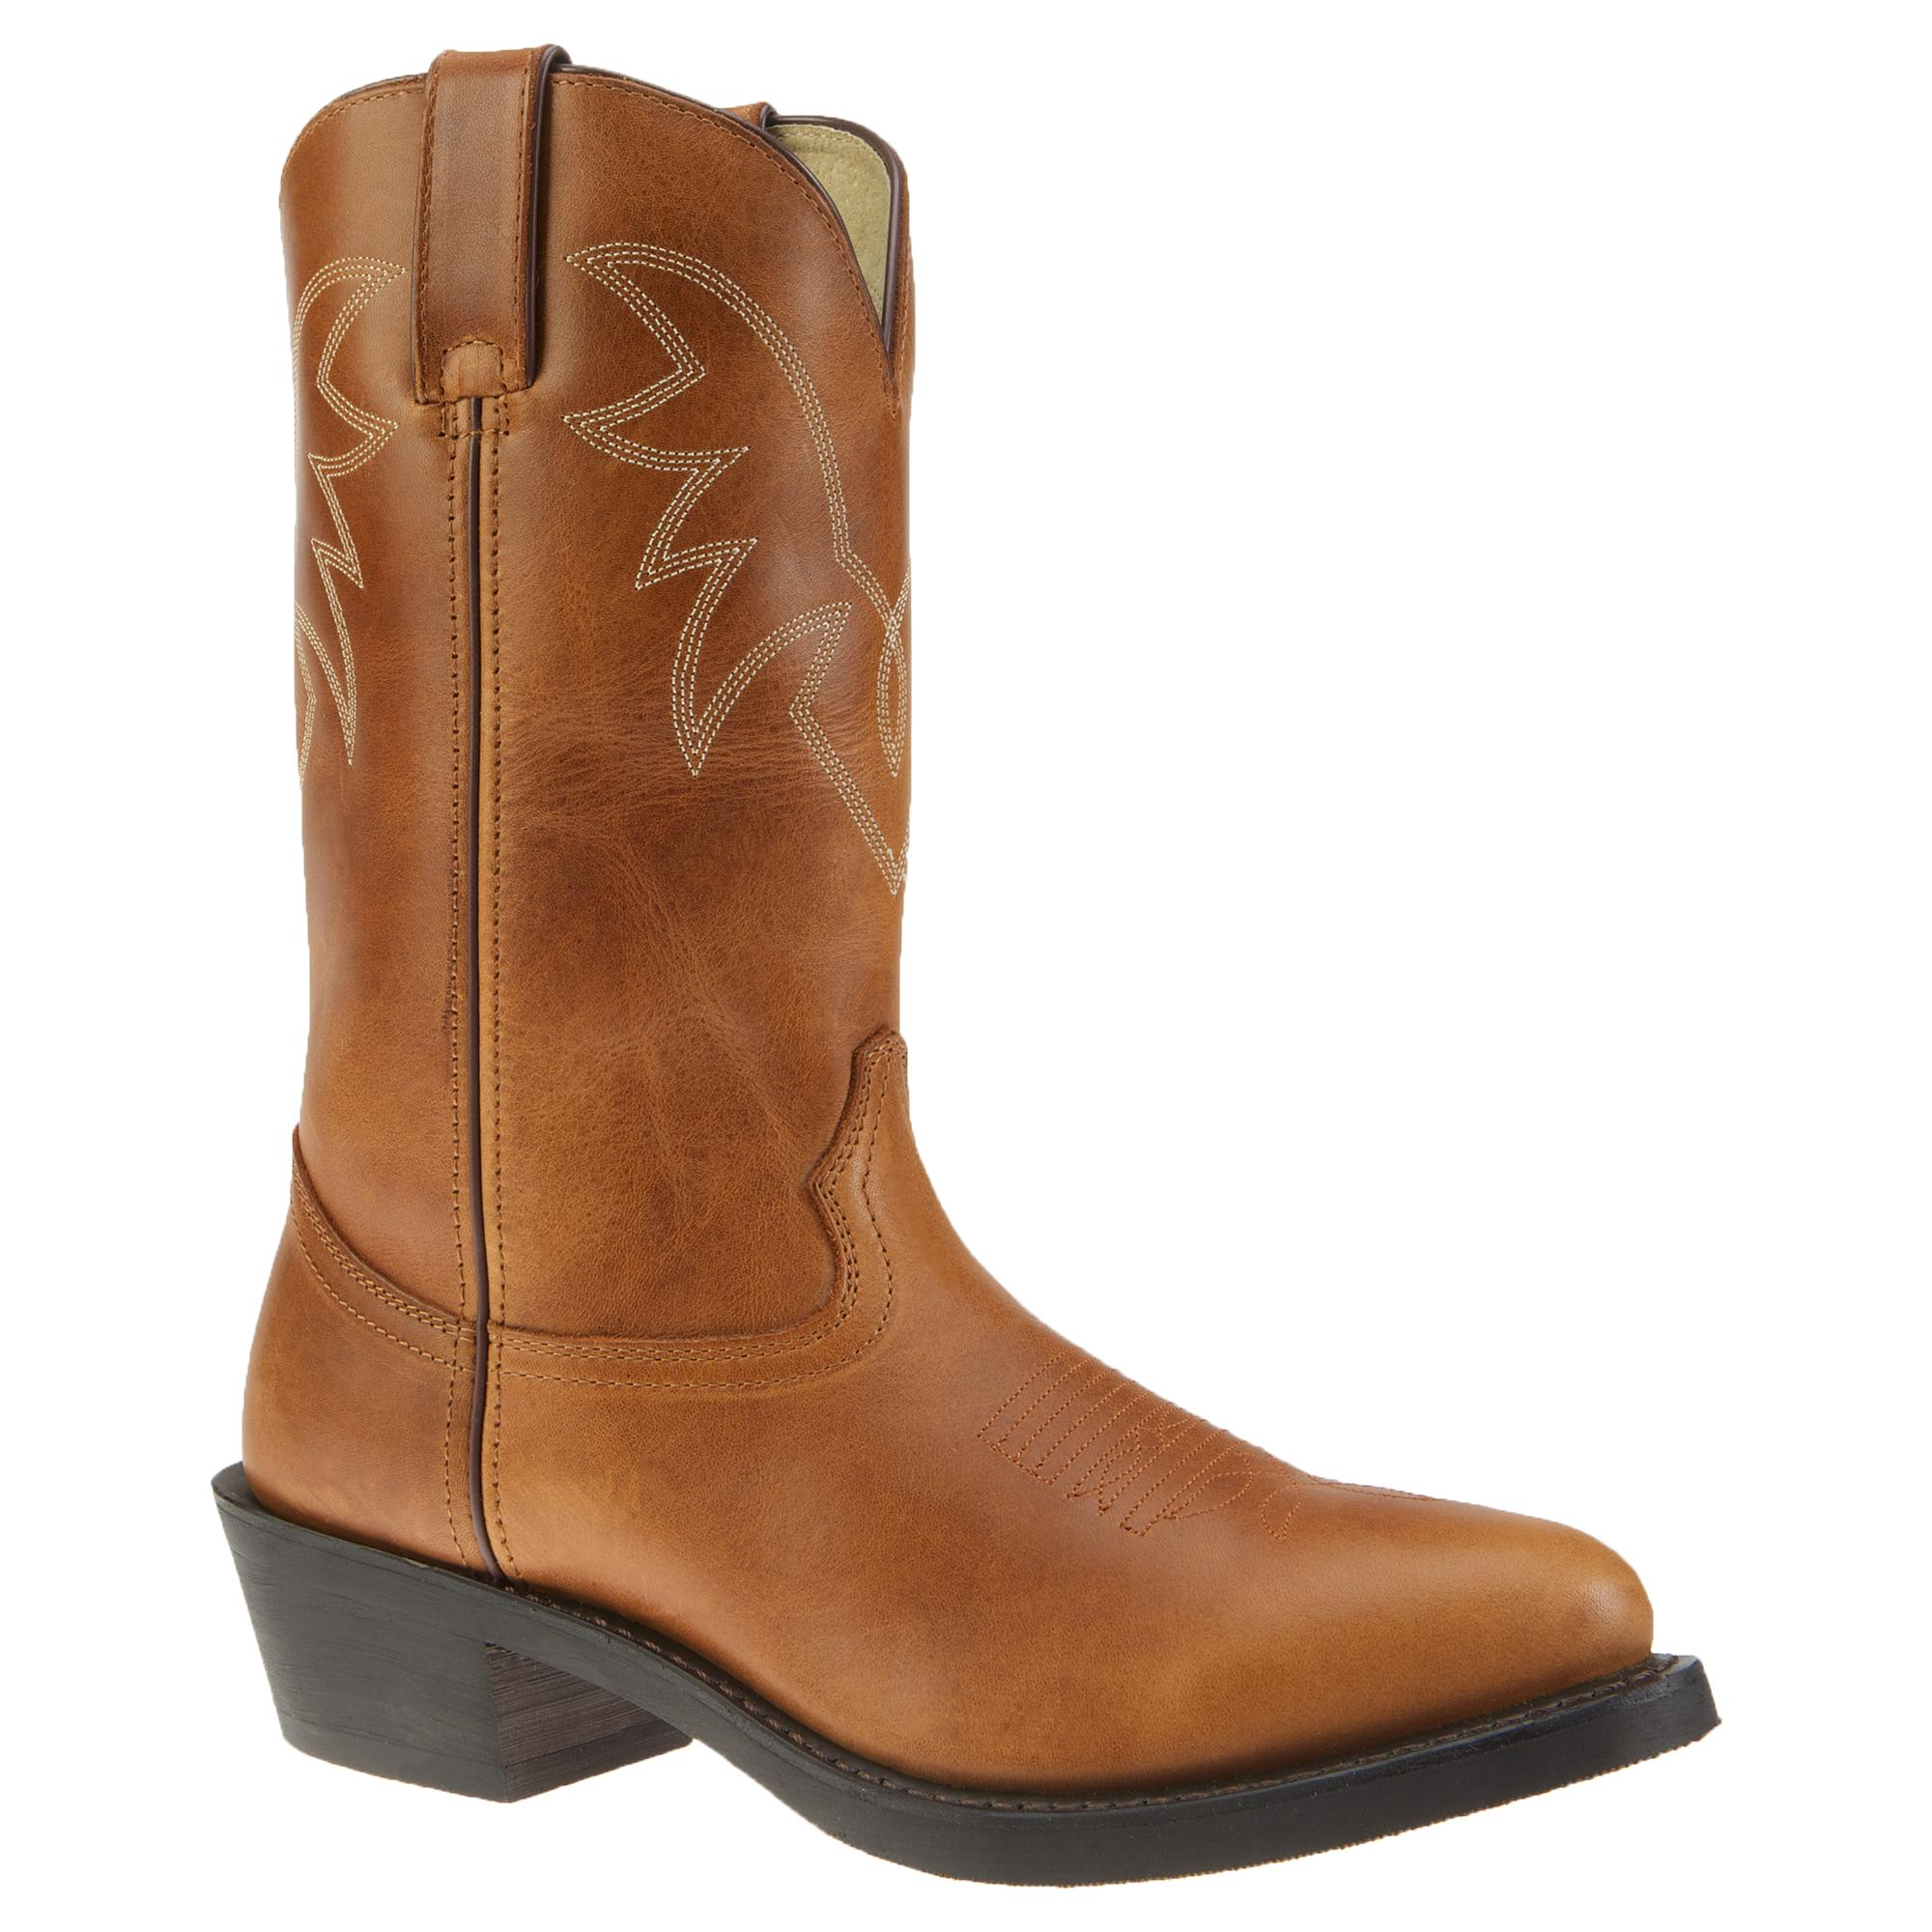 Durango Womens Black Boots Leather Western 11 Inch Slouch Oiled